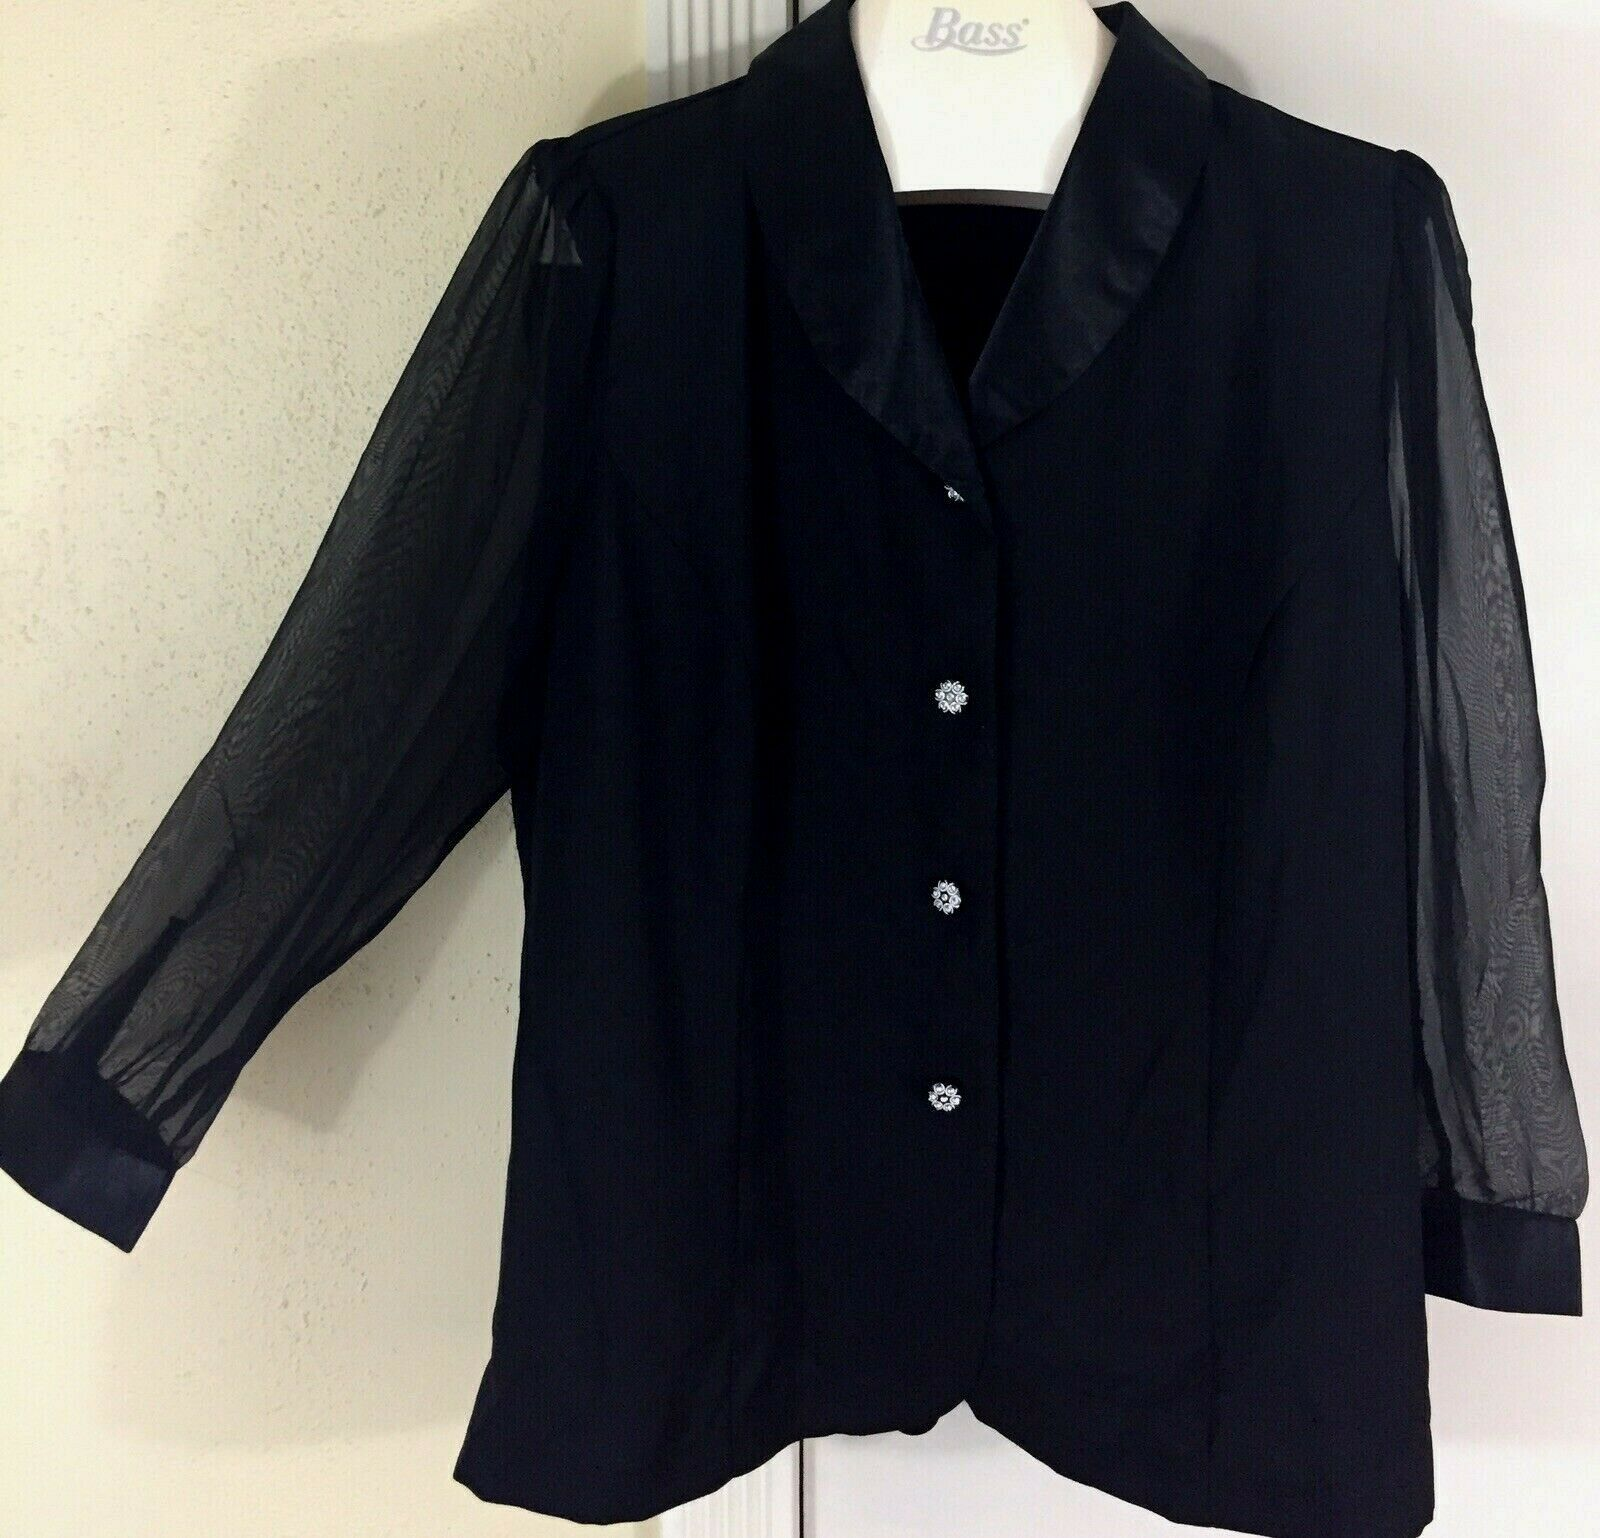 NWOT Candlelight & Champagne PLus Size 22W Black Sheer Sleeves Blouse Top Formal